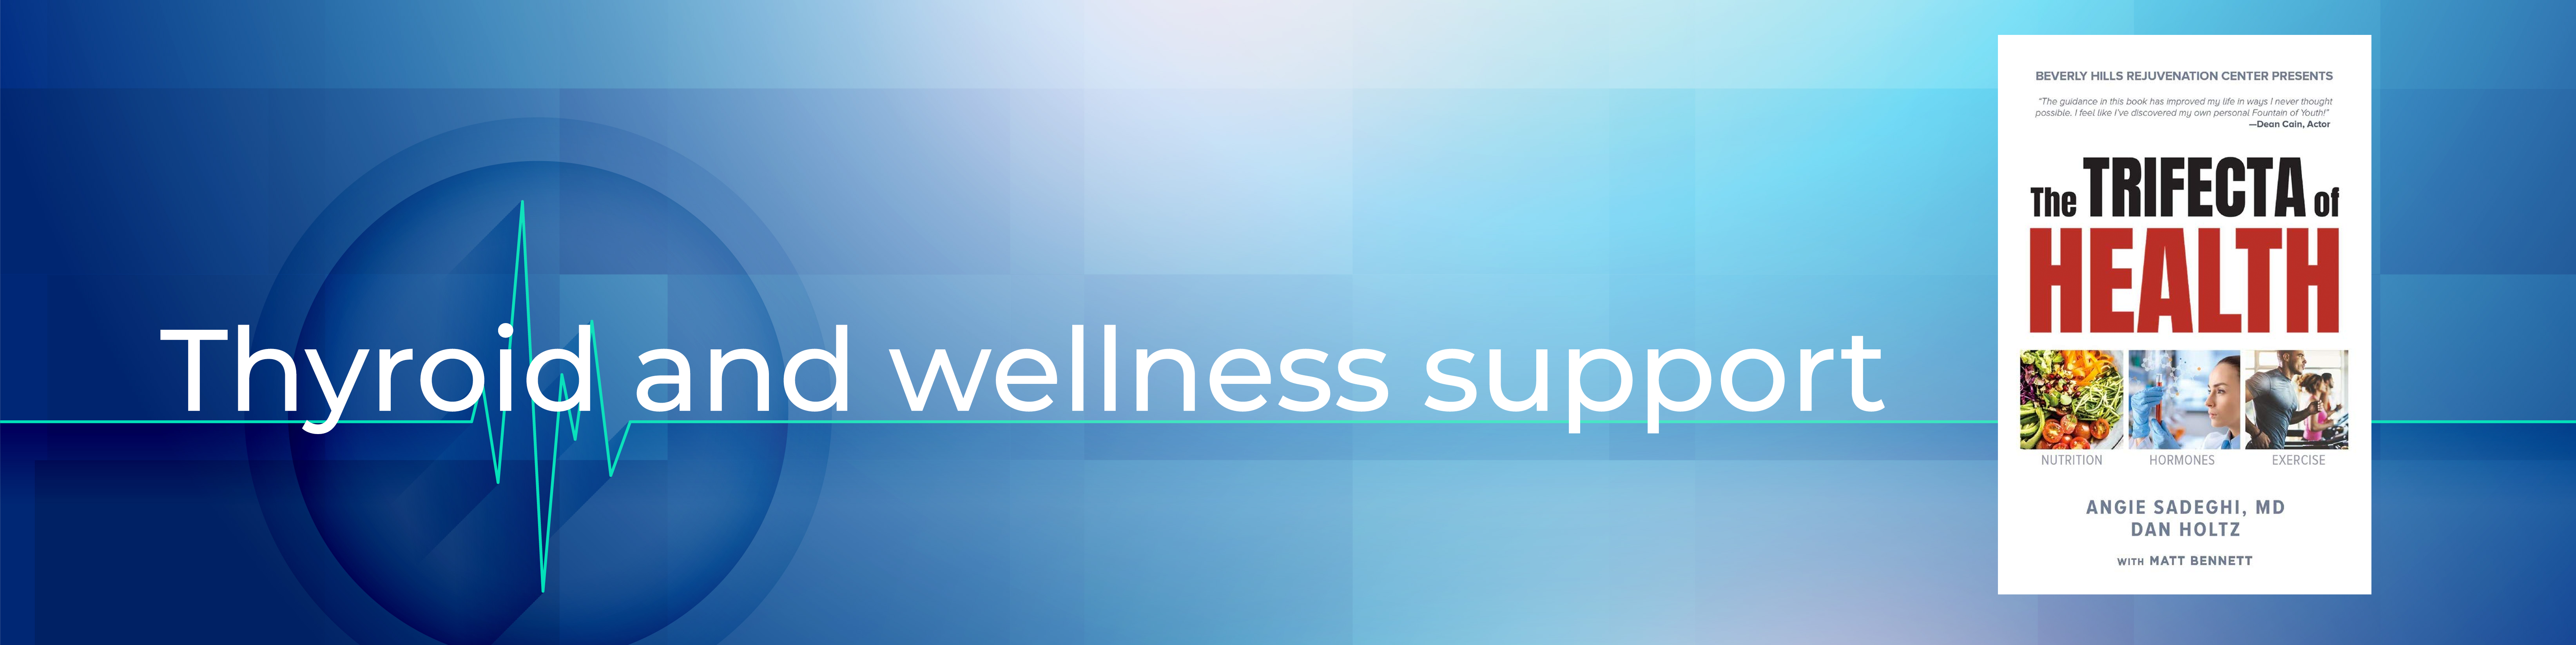 thyroid and wellness support the trifecta of health on amazon